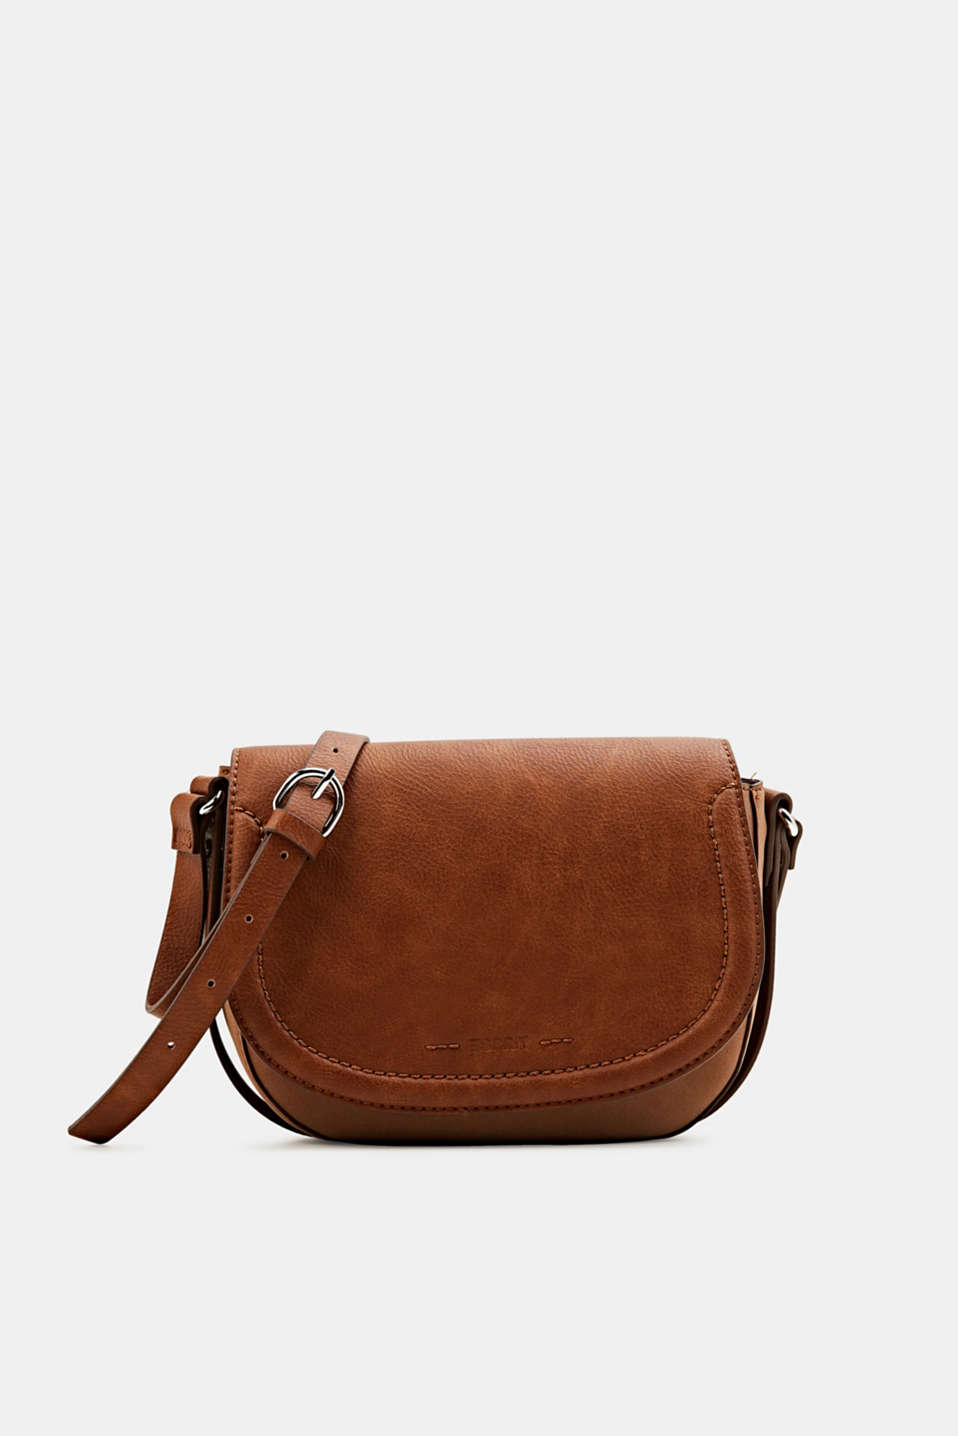 Esprit - Saddle bag van imitatieleer